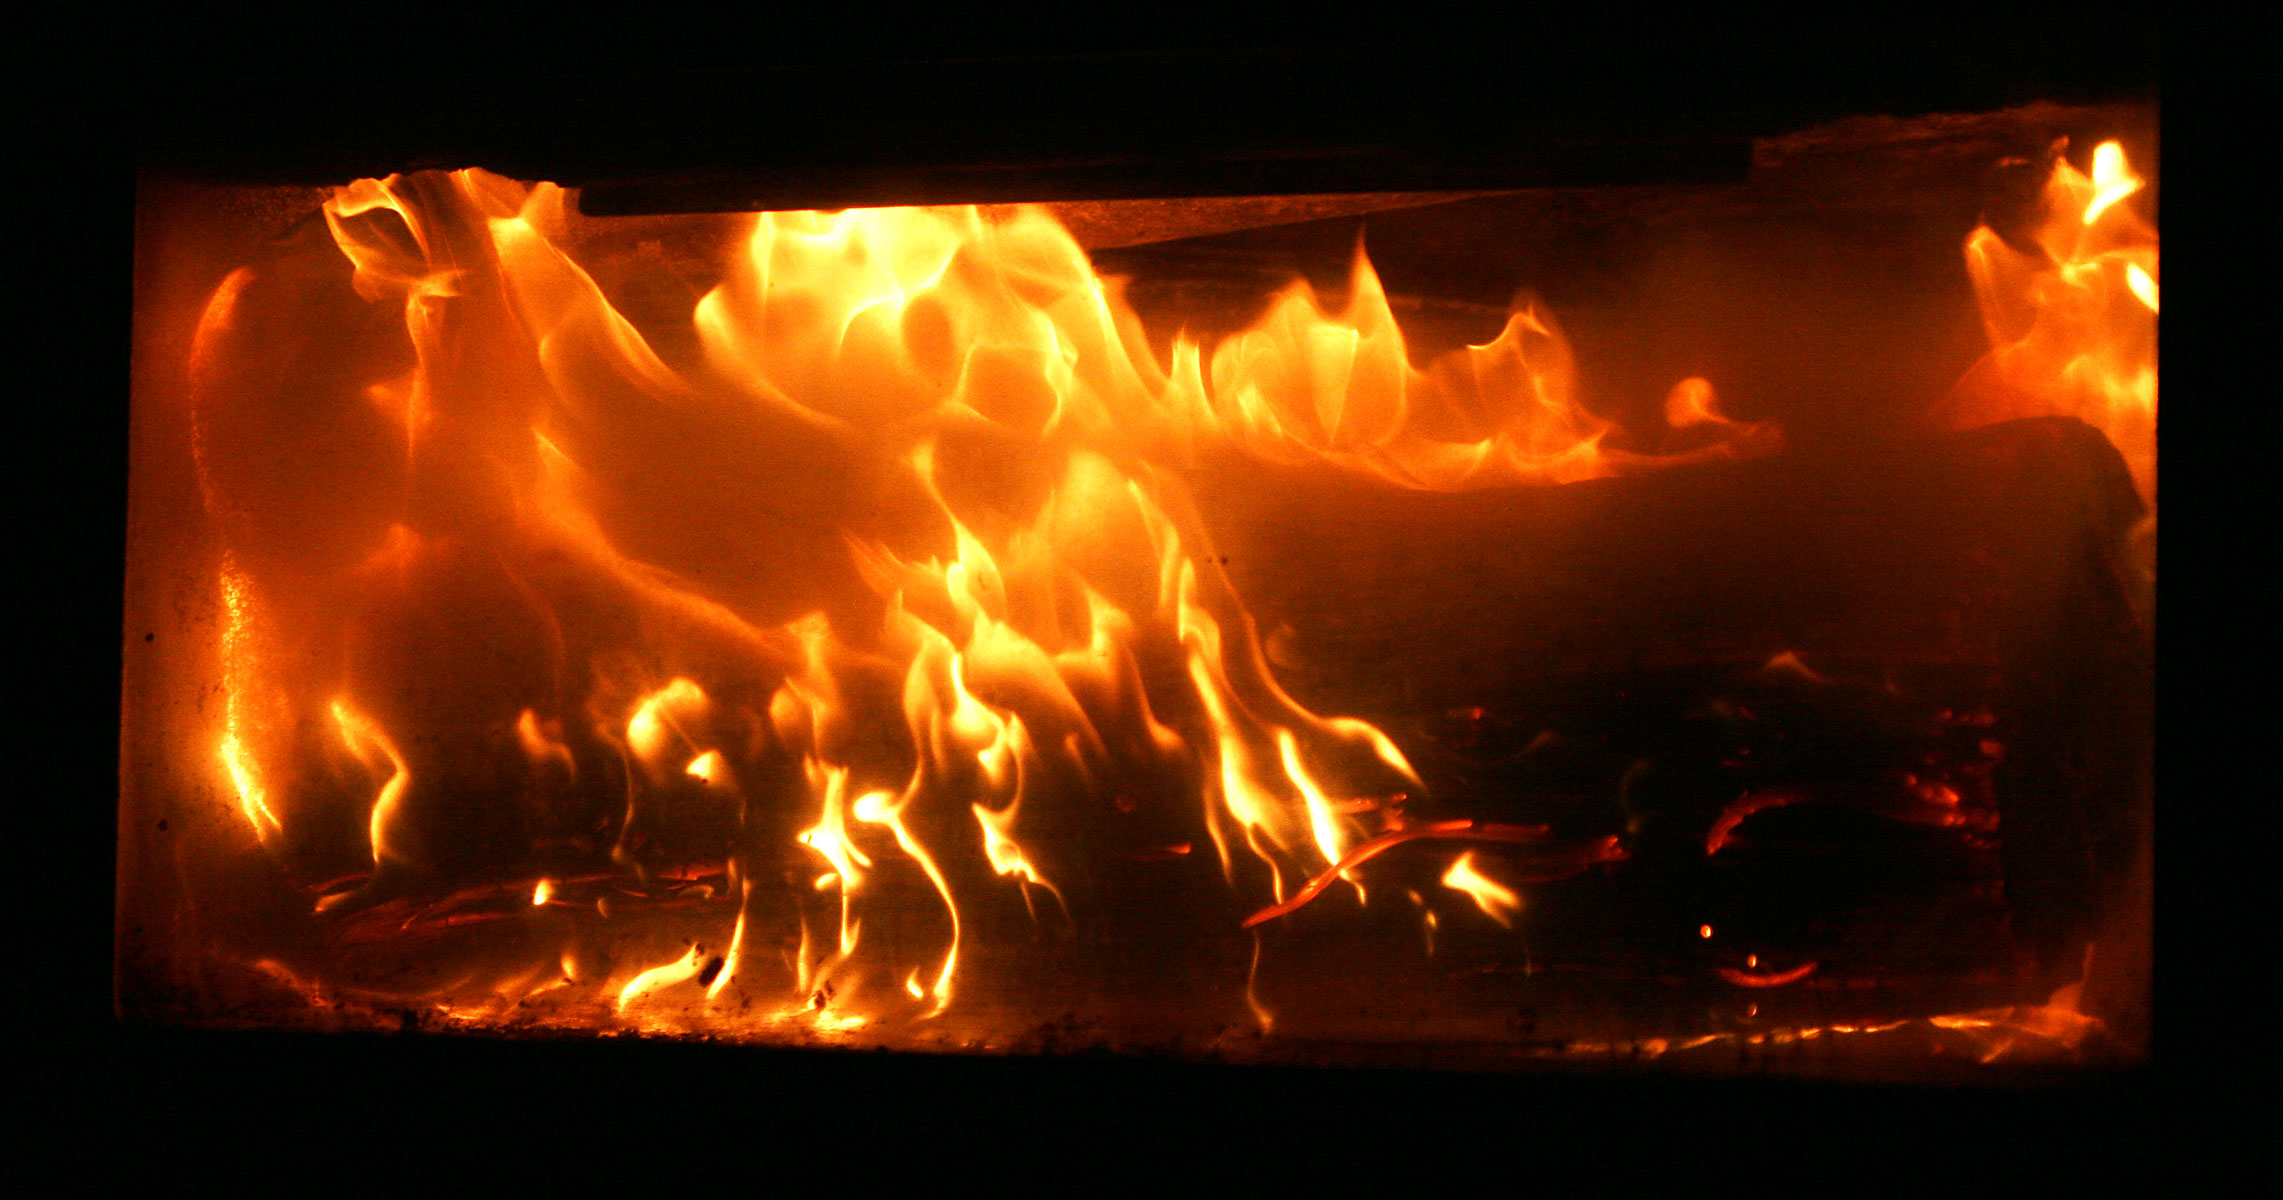 Log in fireplace